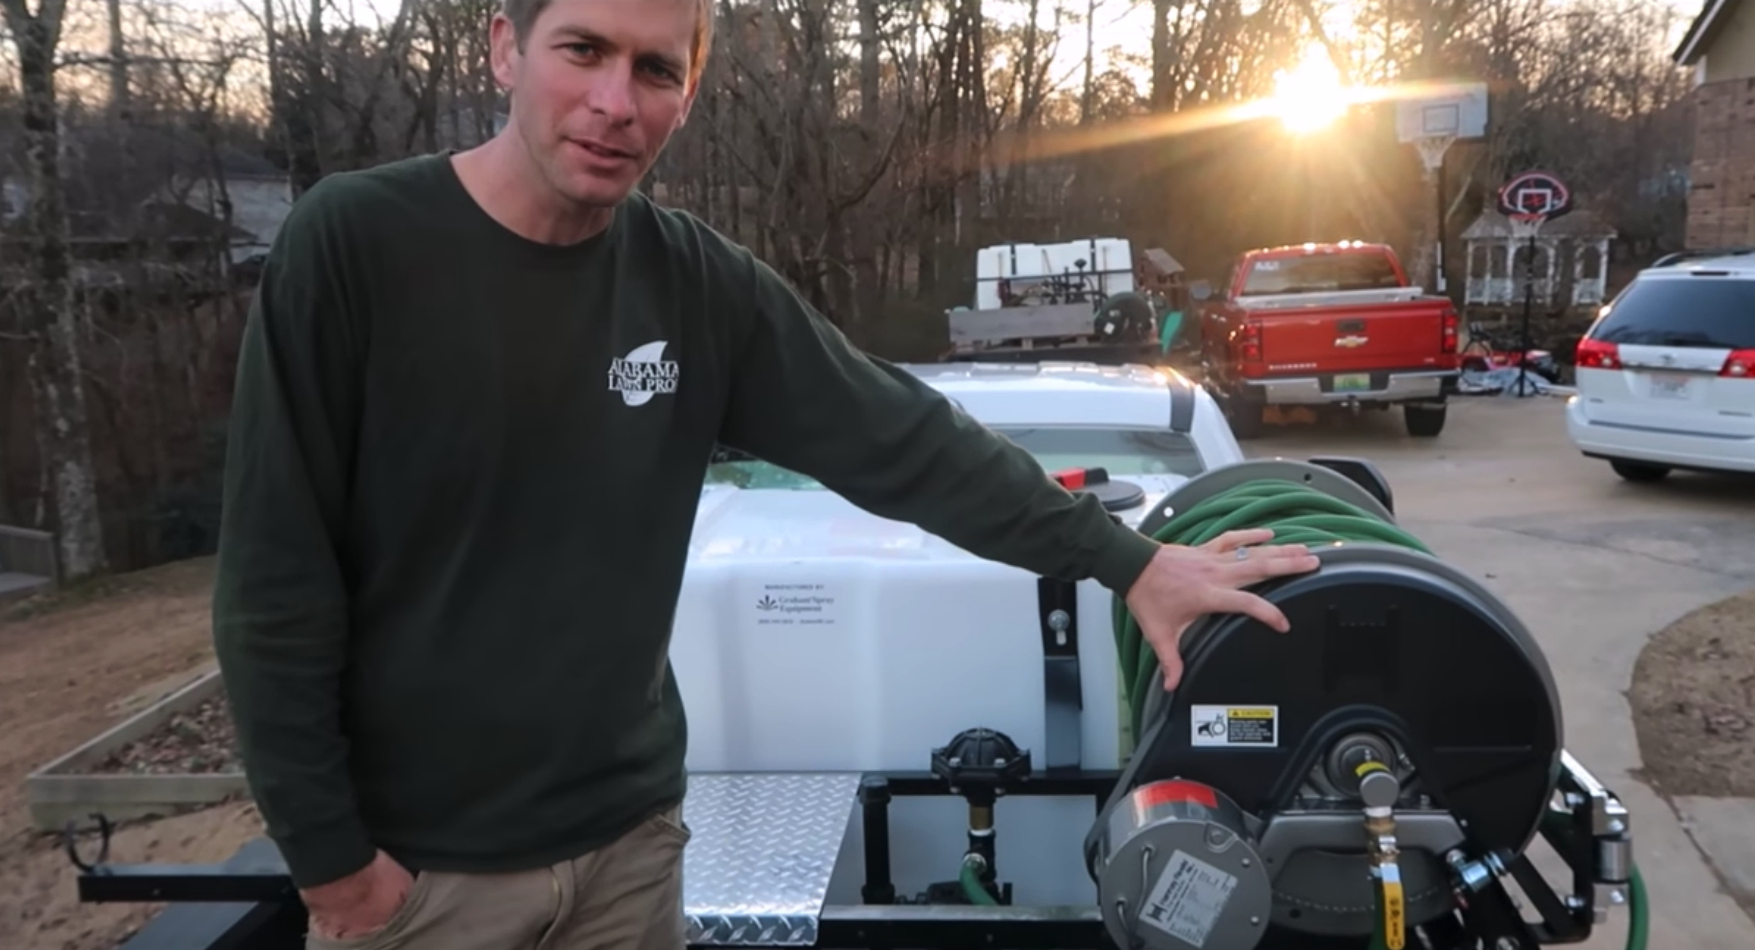 Jason Creel tips for starting a lawn care business